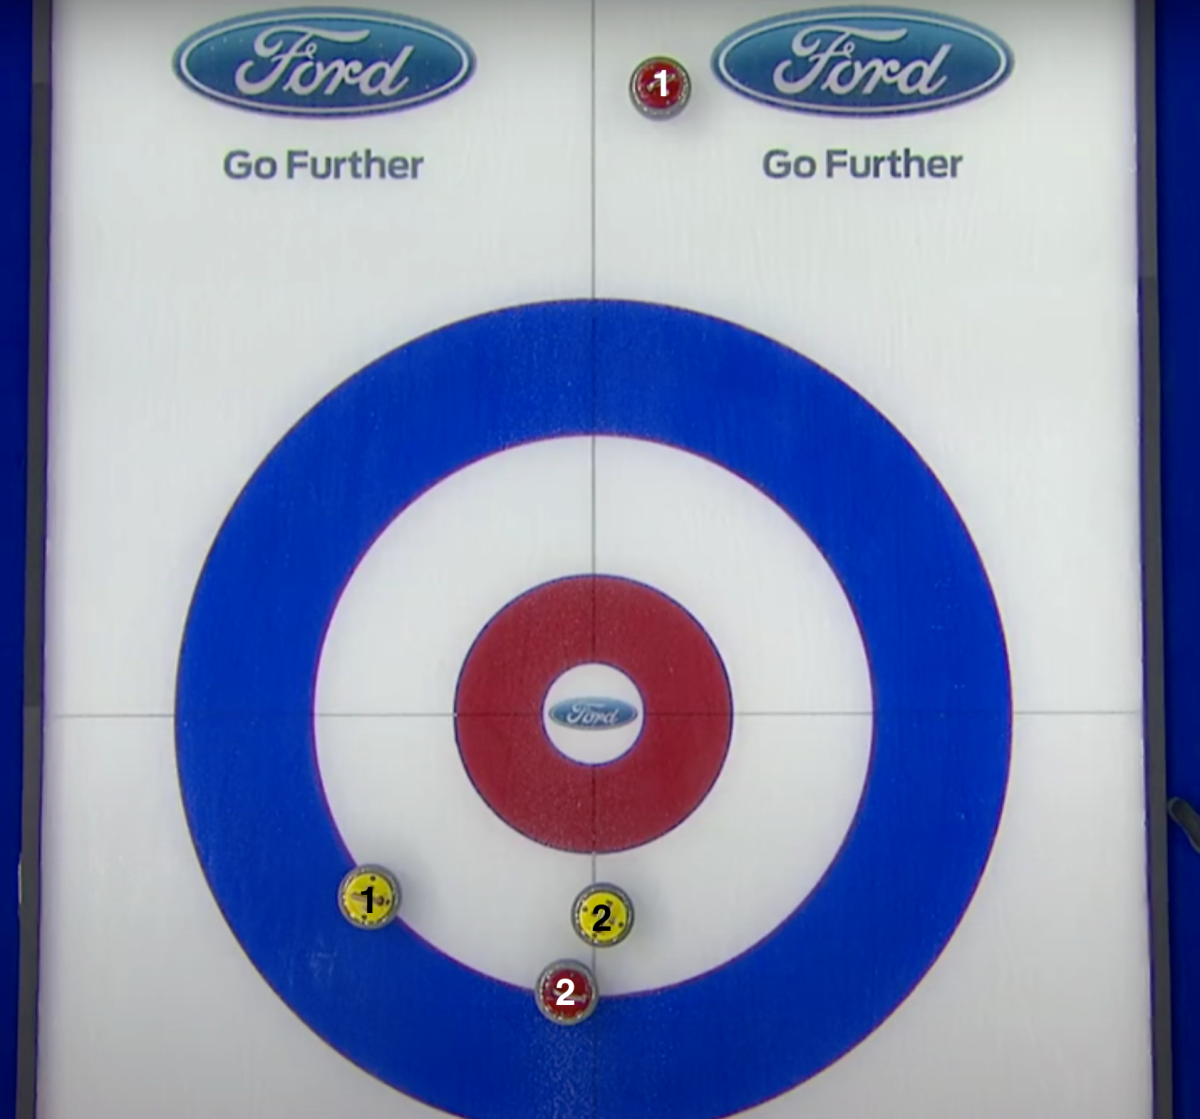 All images via World Curling TV YouTube